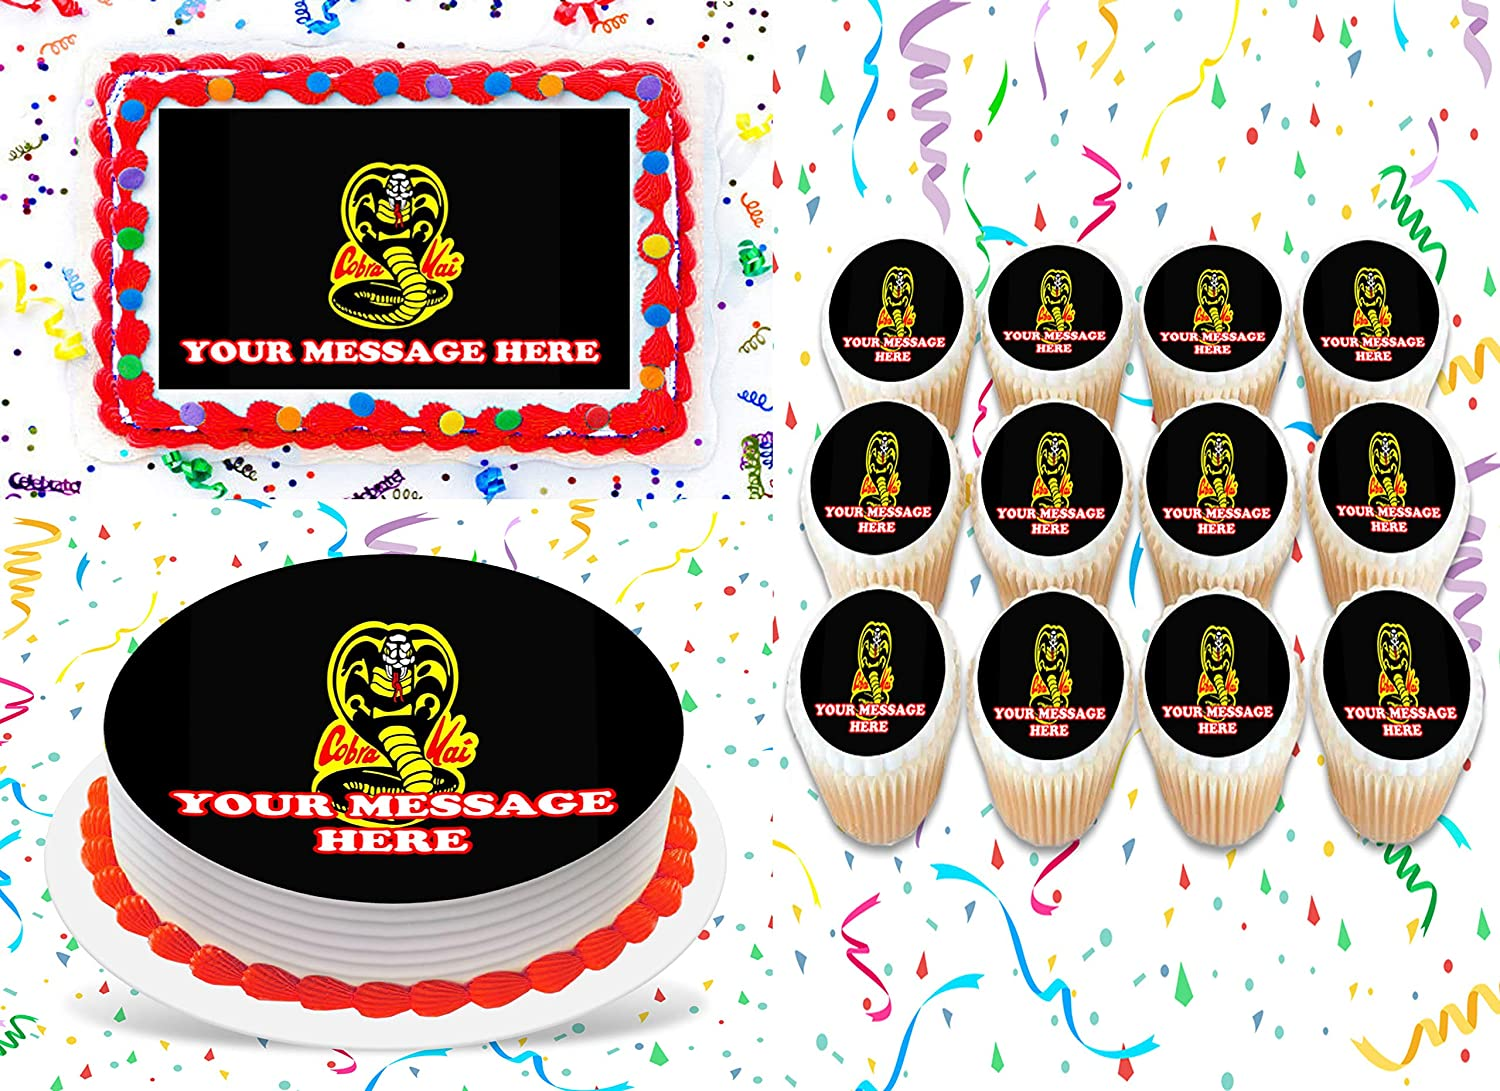 FREE SHIPPING! PRE CUT WAFER PAPER COBRA KAI Edible cookie//cupcake toppers